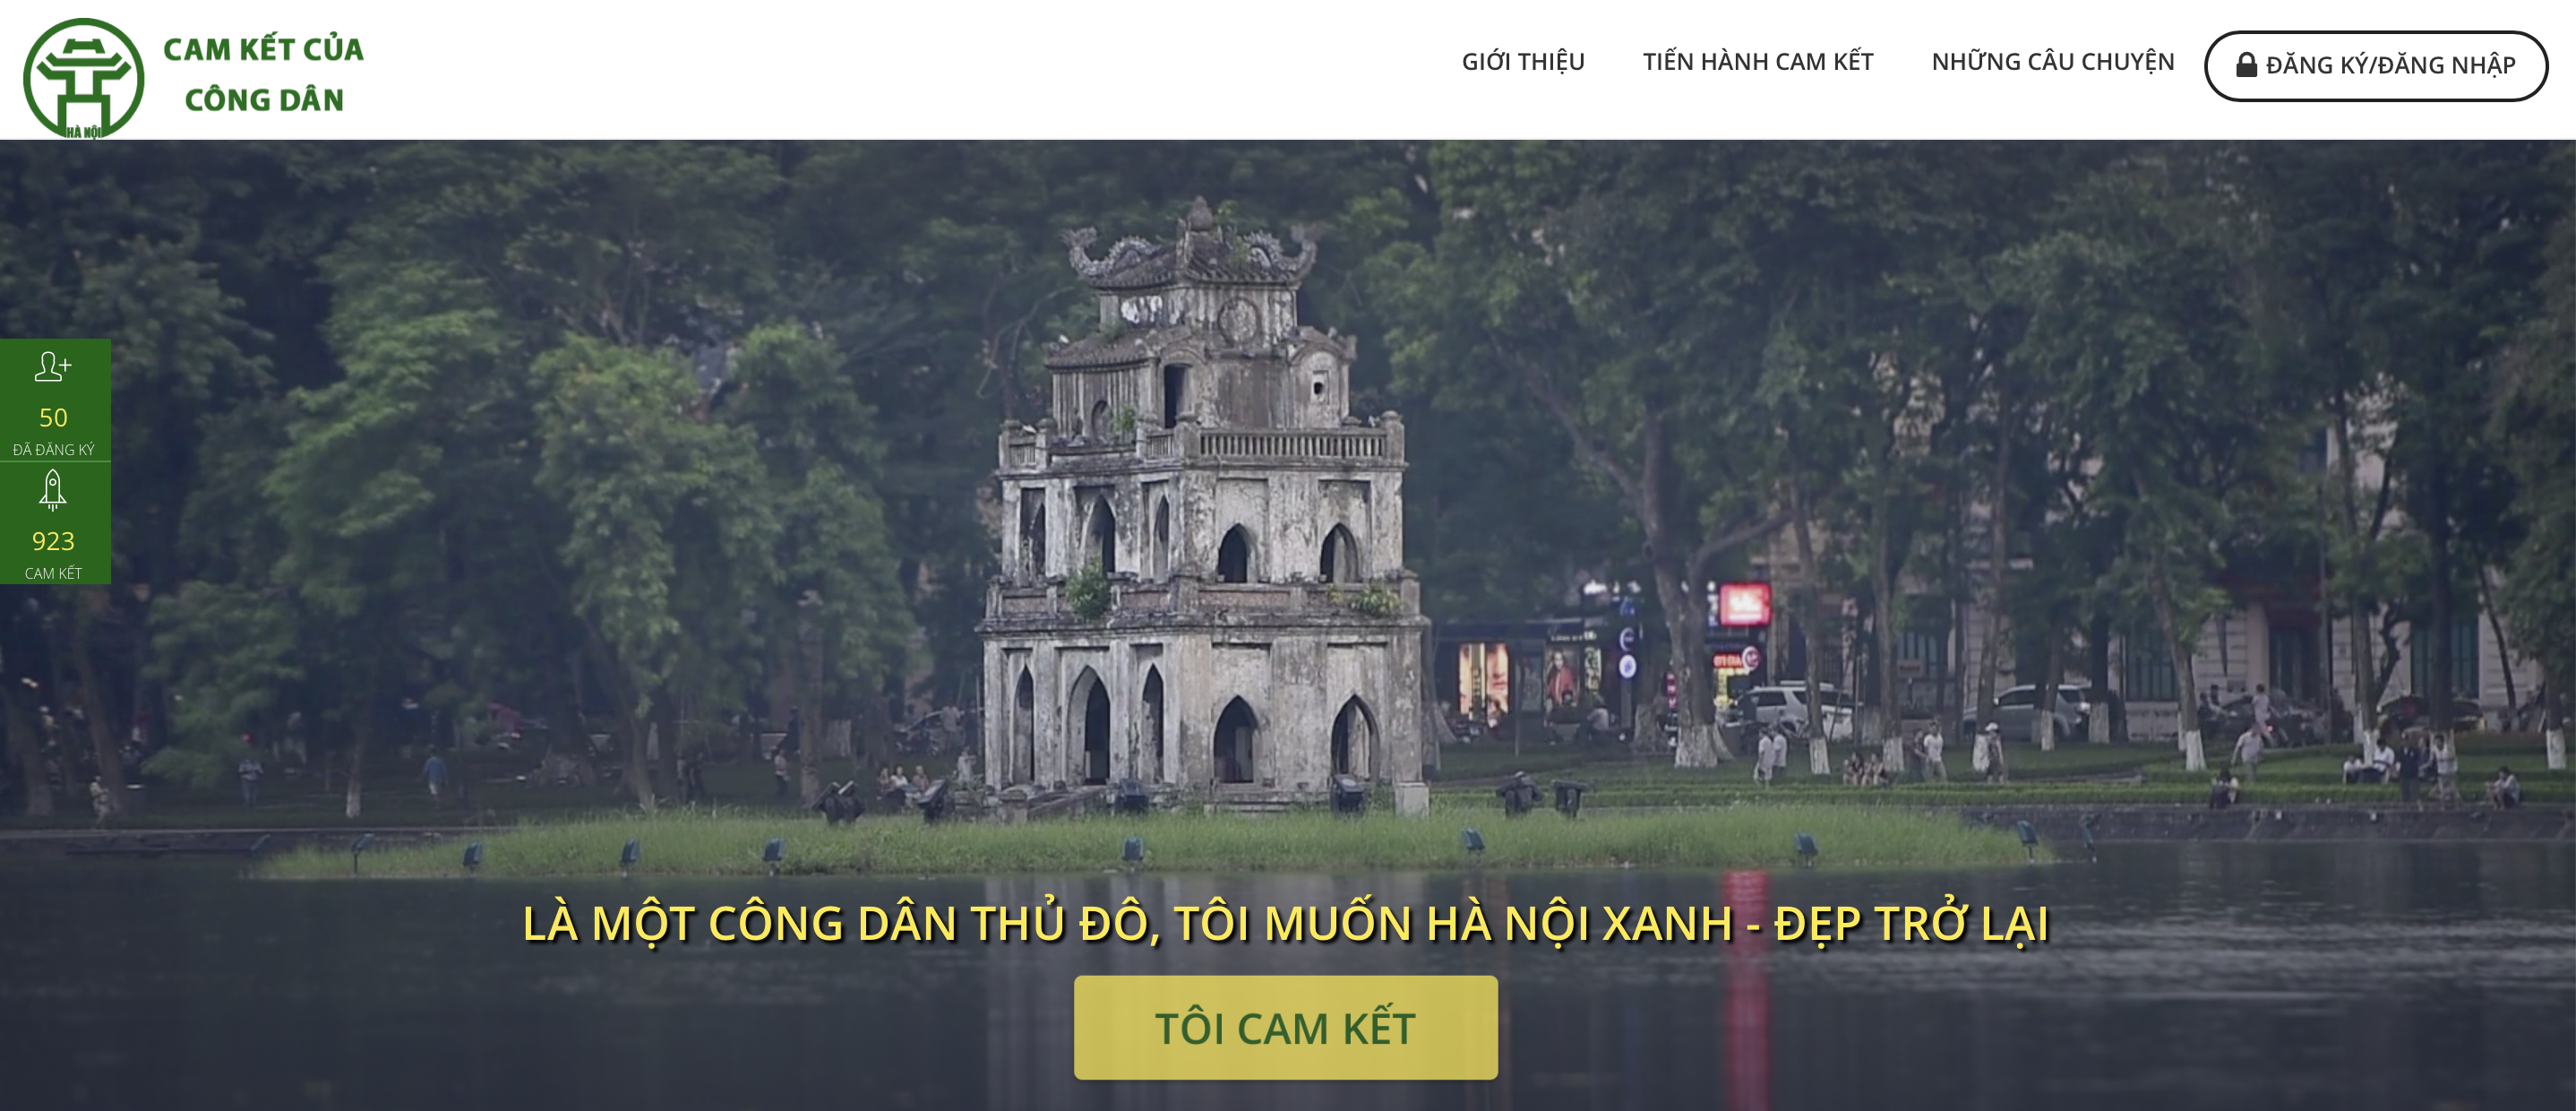 nguoi ha noi van con dot hon 15000 bep than to ong moi ngay